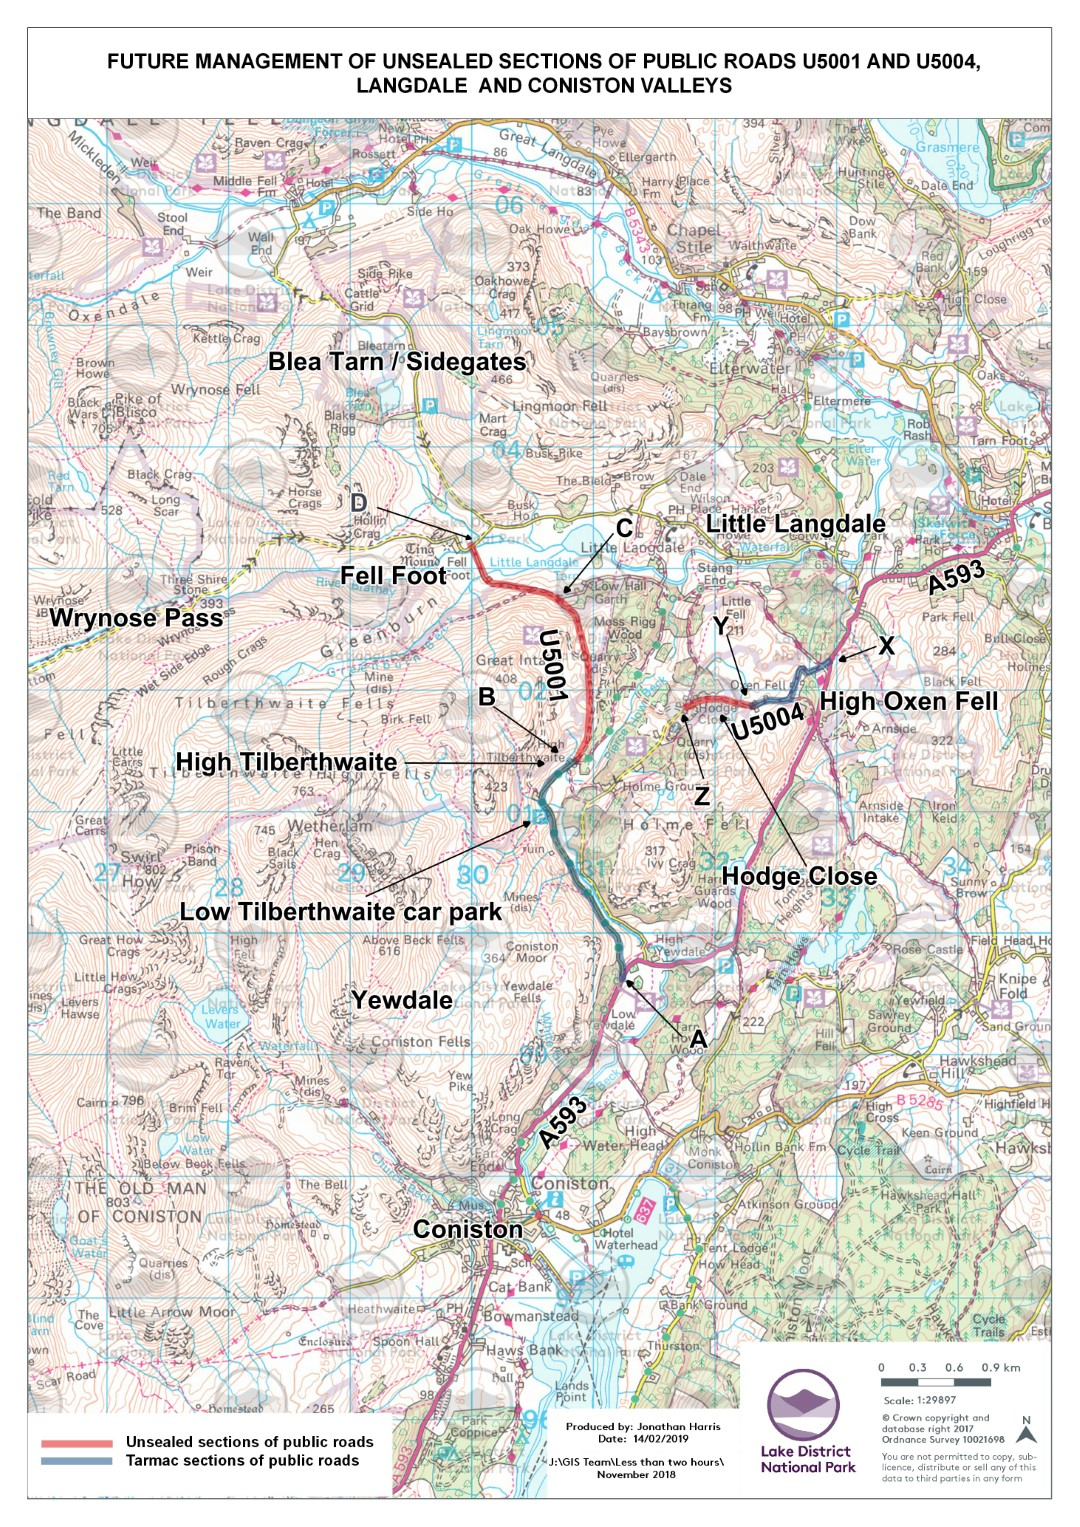 "<span style=""color: #ff0000; font-size: 14pt;""><strong>This questionnaire is only for the  unsealed section of this road between High Tilberthwaite and Fell Foot, shown B-C-D on this map, and called 'Tilberthwaite Road' from now on.<br><br><span style=""color: #000000; font-size: 12pt;"">There is a separate questionnaire (<a href=""https://www.surveymonkey.co.uk/r/highoxenfell"" rel=""nofollow"" target=""_blank"">opens in new window</a>) for the High Oxen Fell road (X-Y)<br></span><br><span style=""color: #000000;"">After looking at the map and reading the briefing note, click 'NEXT' to start the survey</span><br></strong></span>"